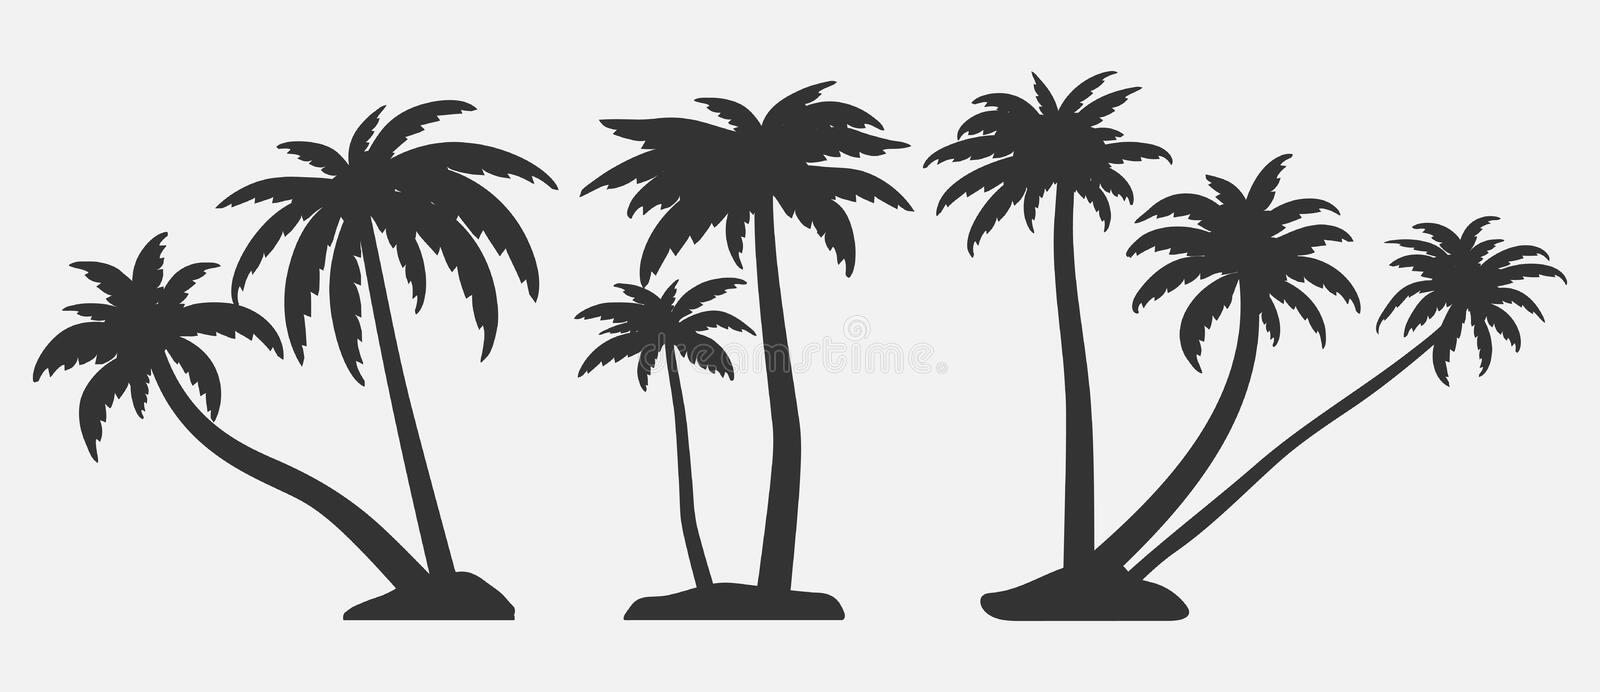 Set of palm trees silhouettes. Vector illustrations isolated on white background. Tropical trees for design about nature royalty free illustration